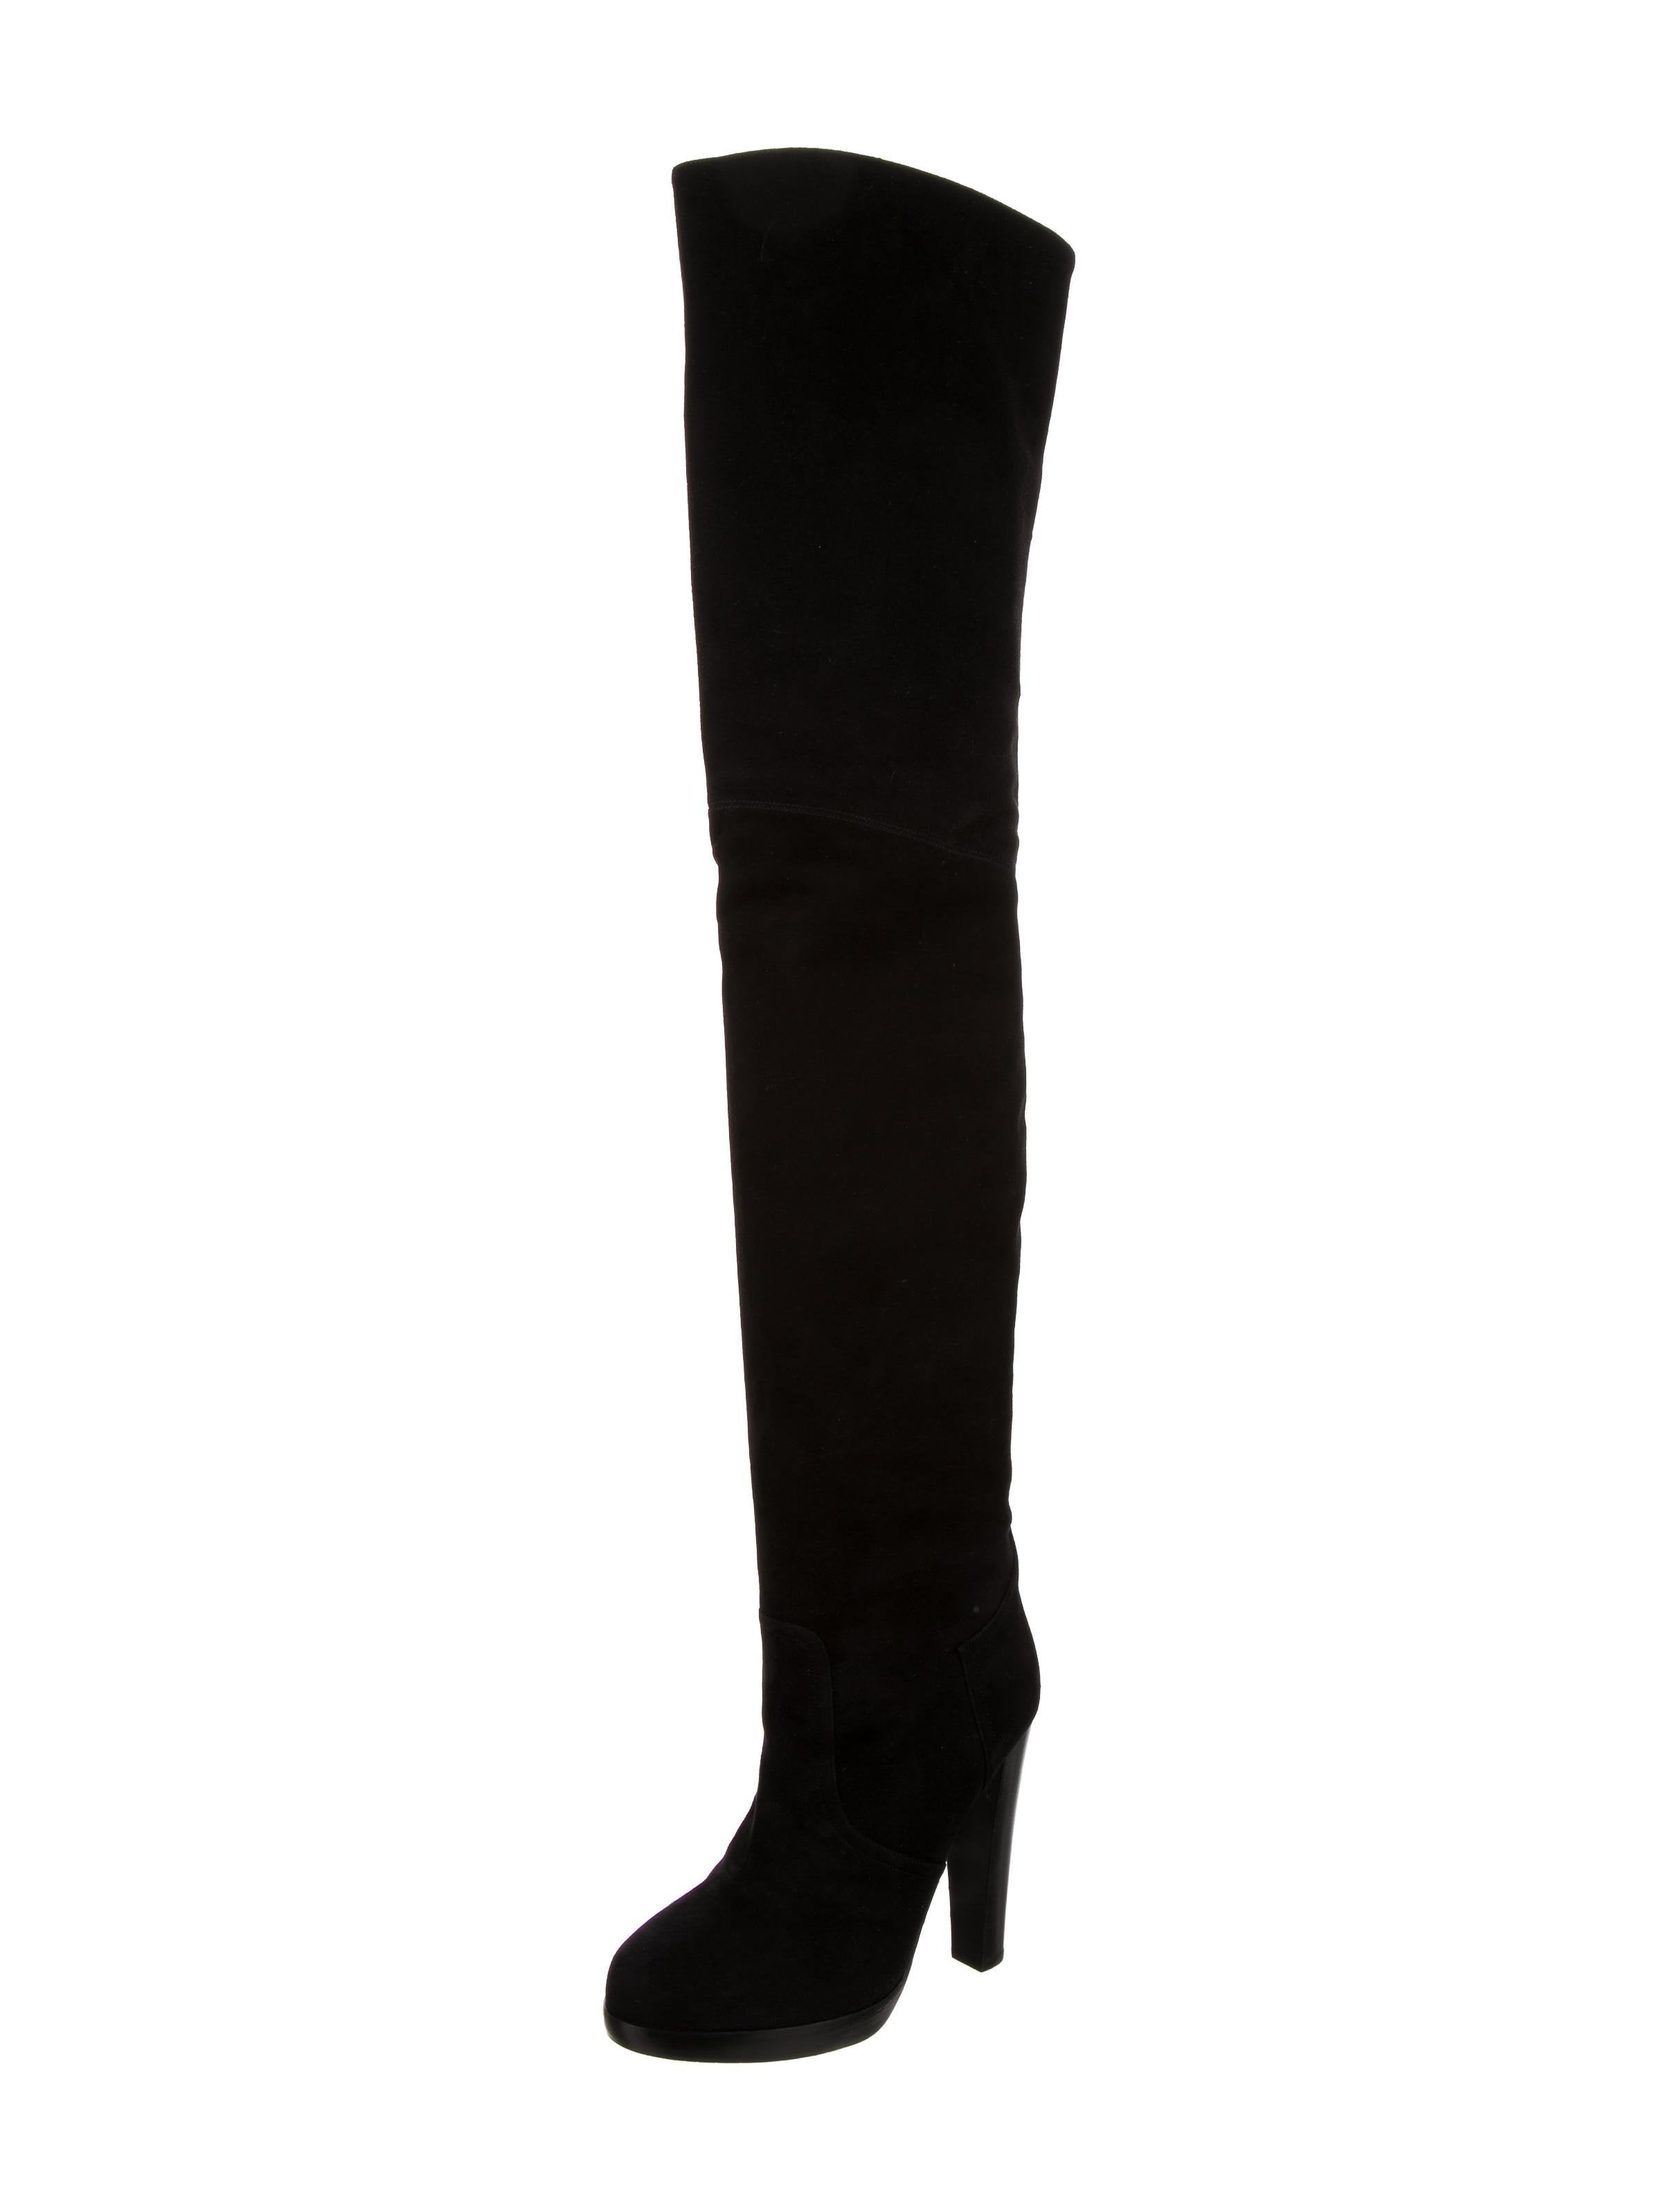 Hermès Knee-High Leather Boots